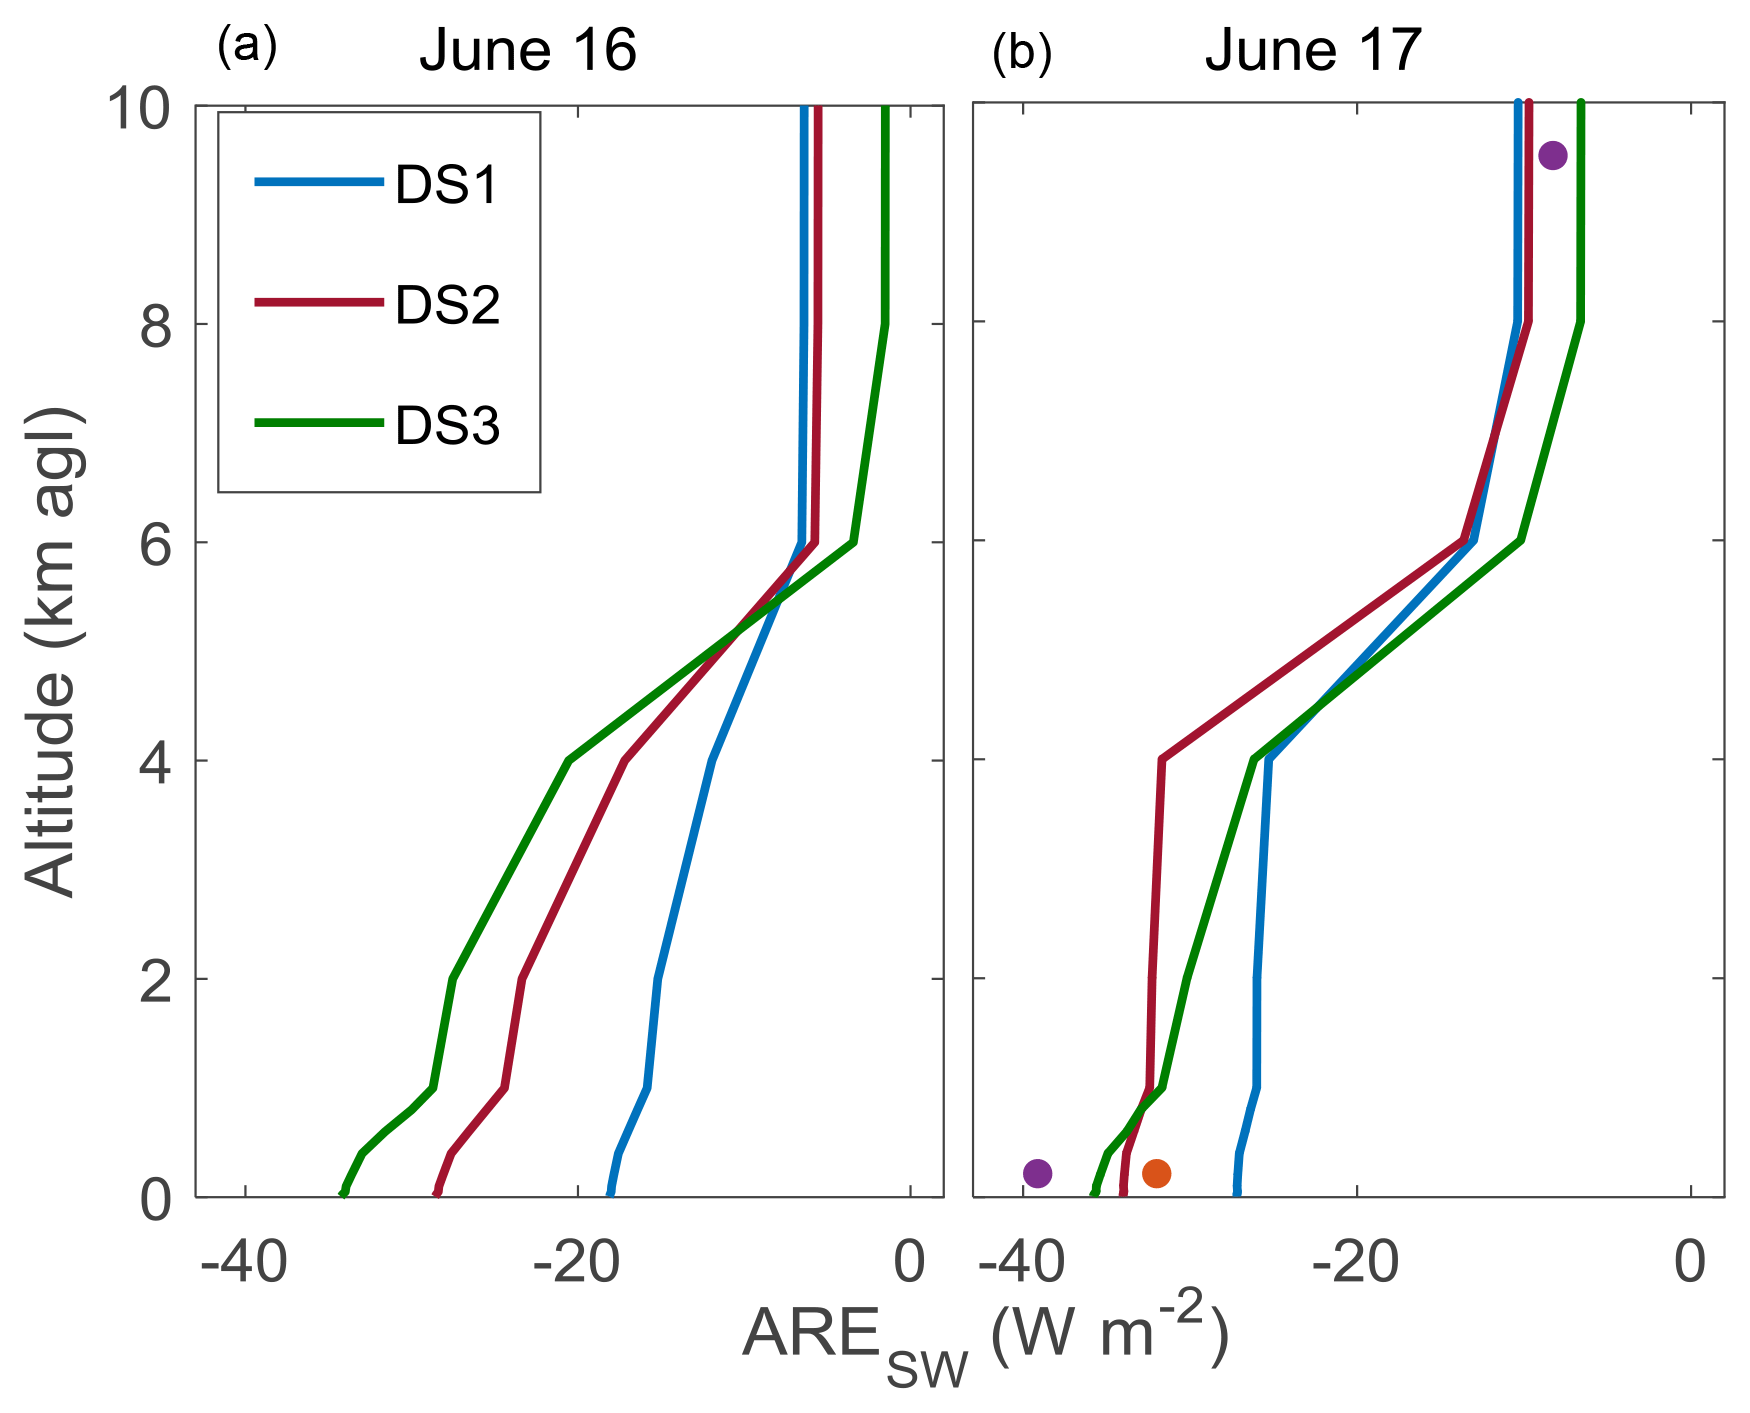 ACP - Impact of mineral dust on shortwave and longwave